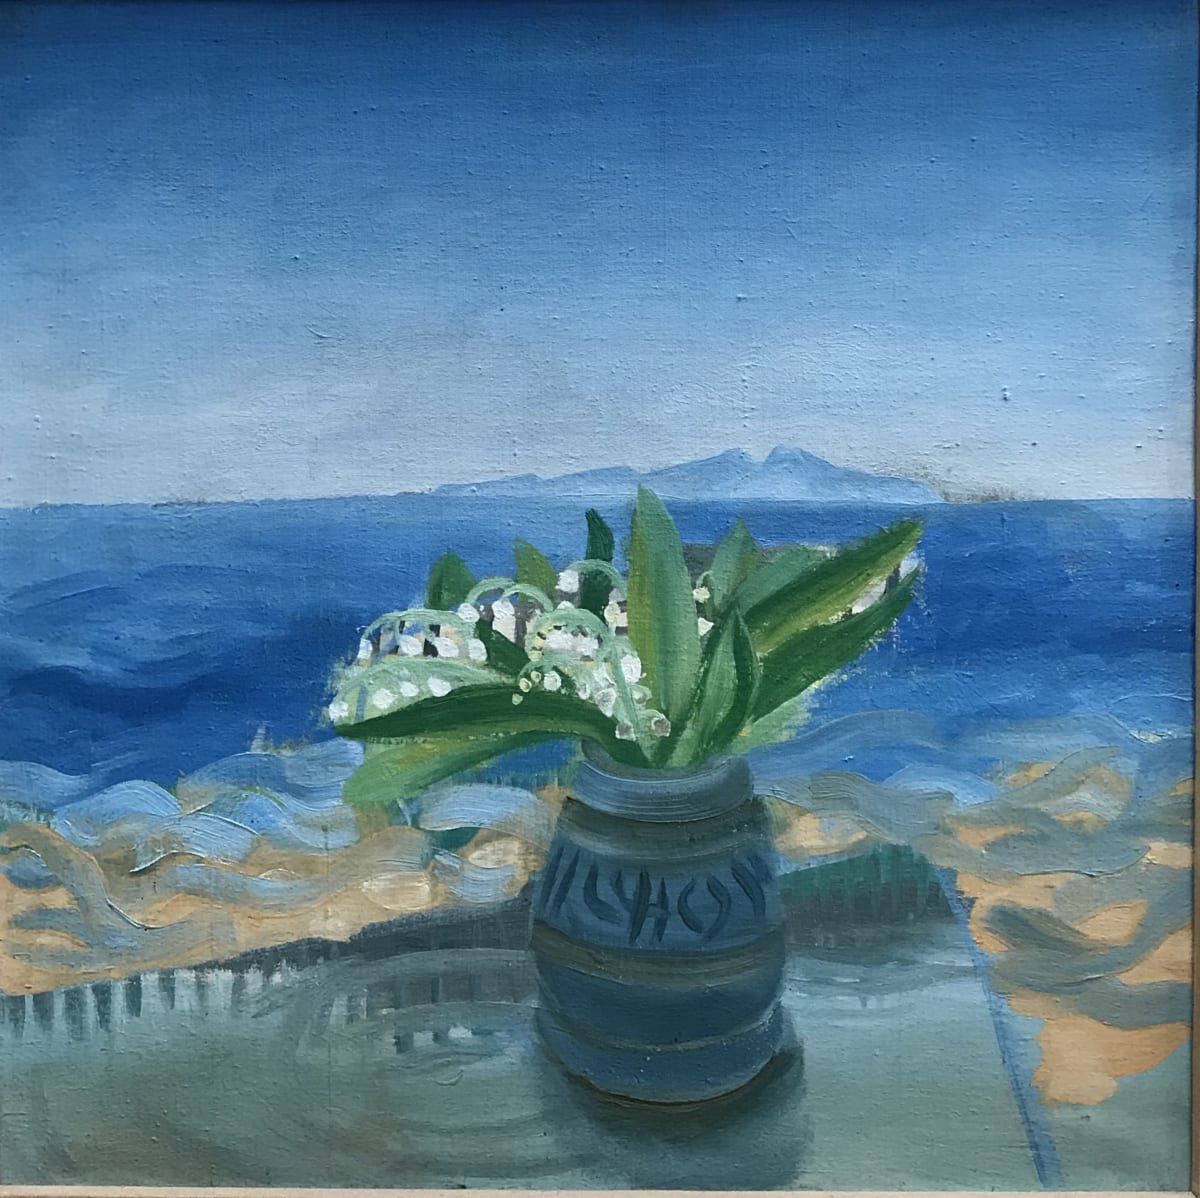 Winifred Nicholson, Lily of the Valley, St Bee's, 1940's